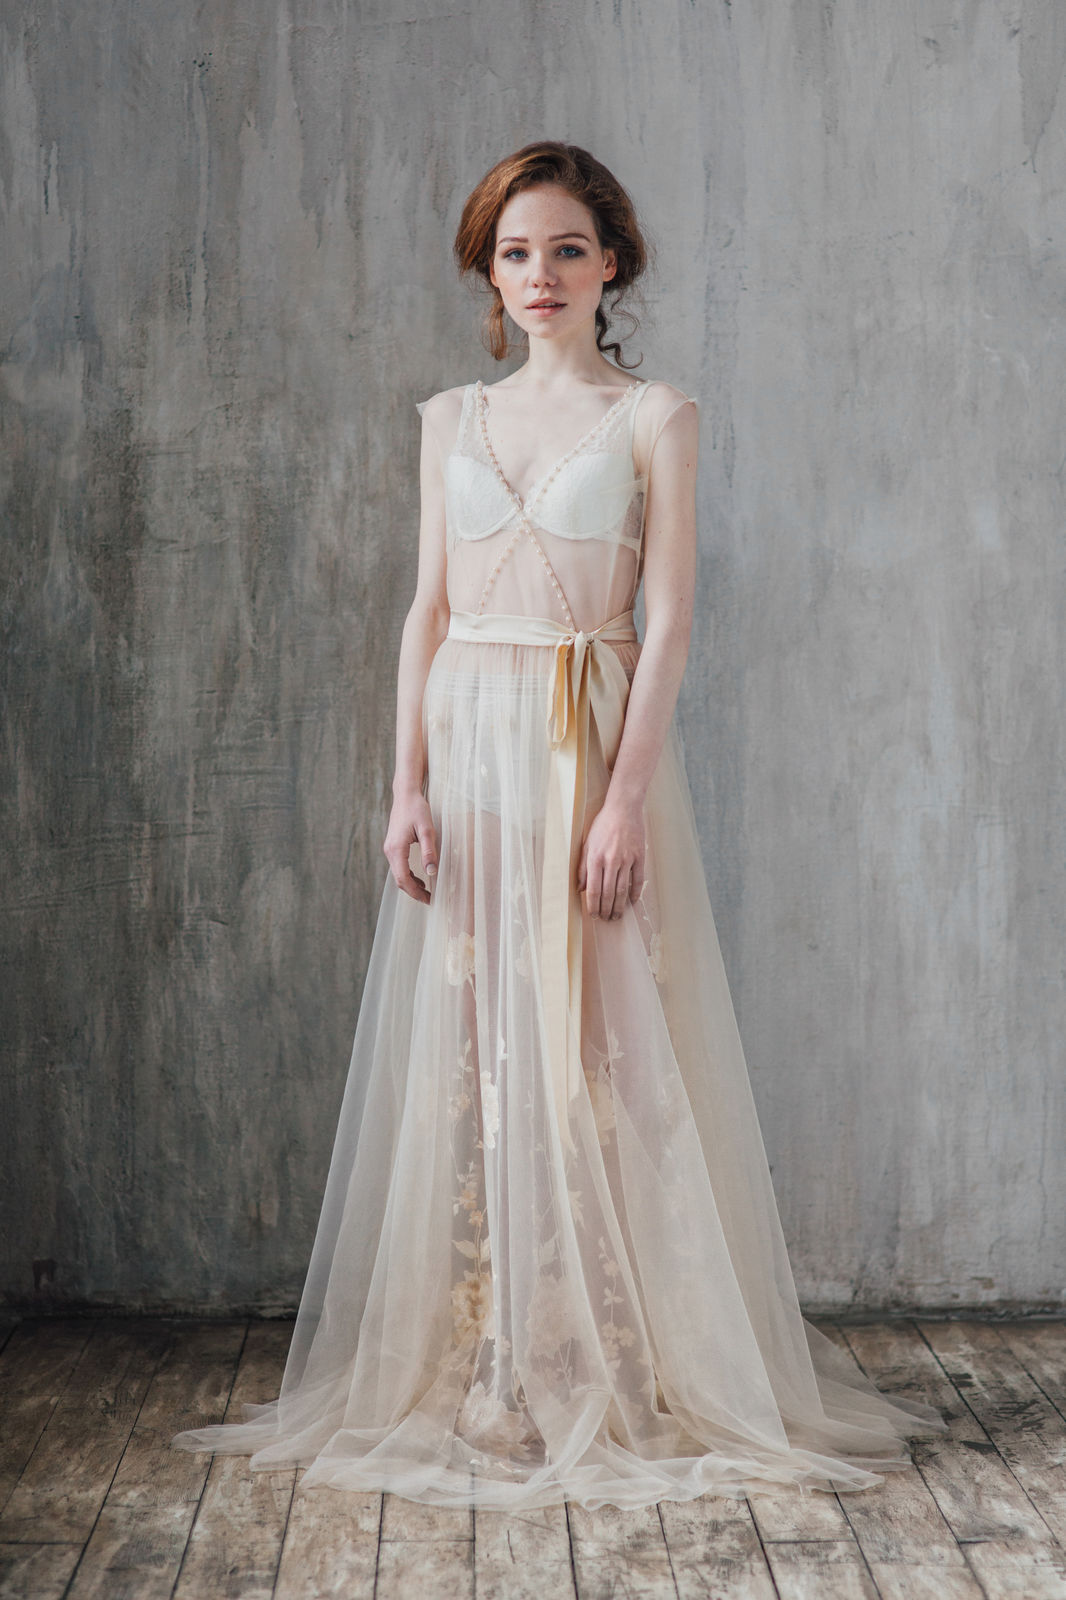 Vesssna-Wedding-ss2016-Buduarnoe-plate-Golden-Flowers-1.jpg